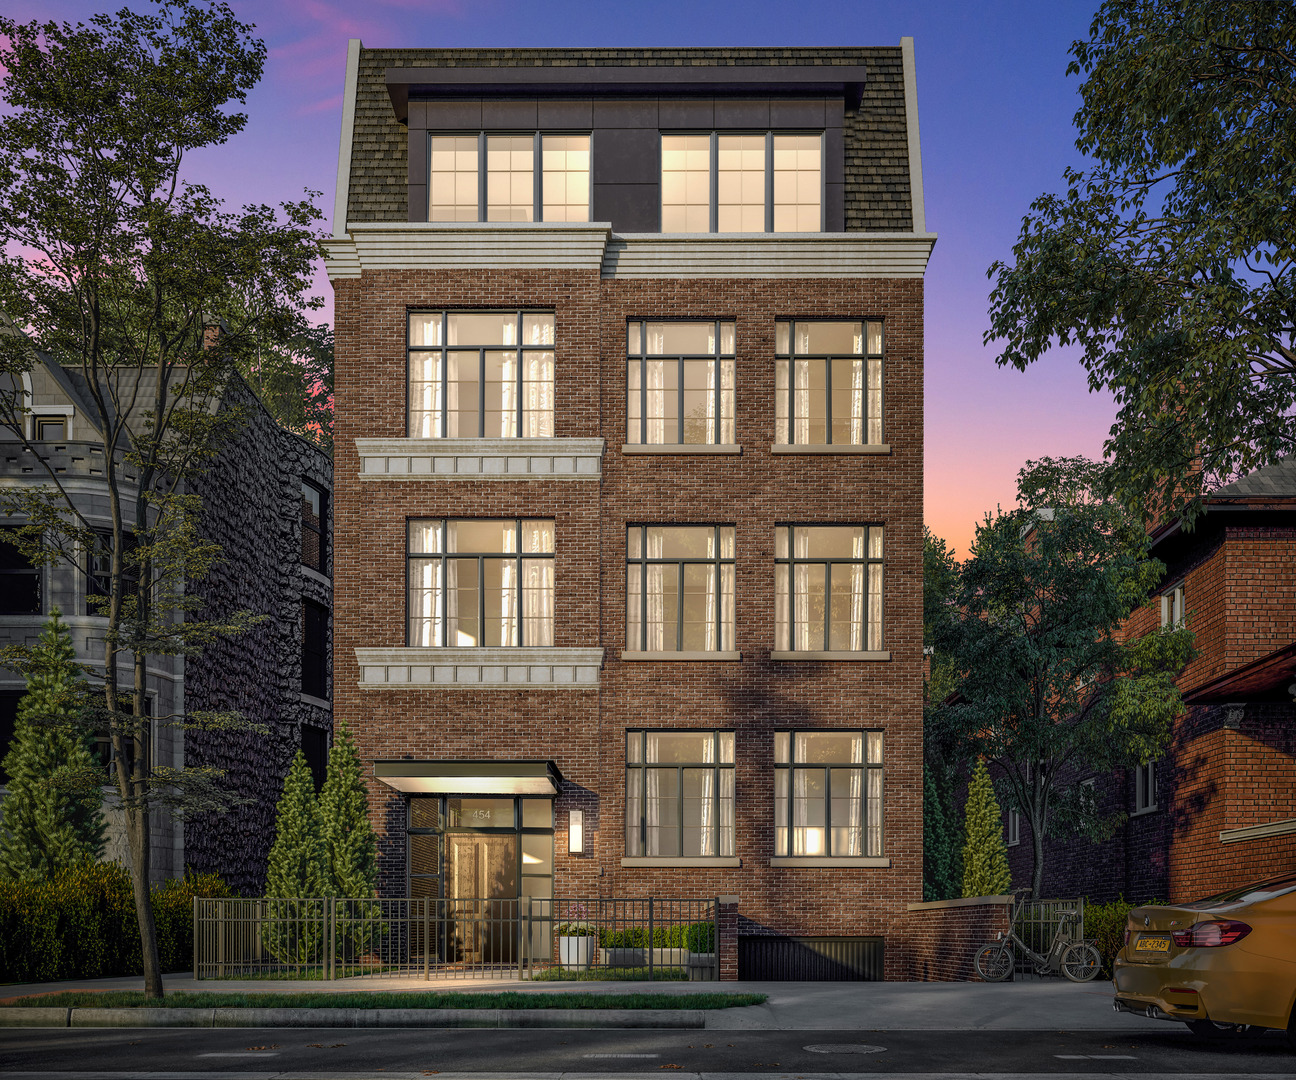 454 West Barry Avenue, Chicago-Near West Side, Illinois